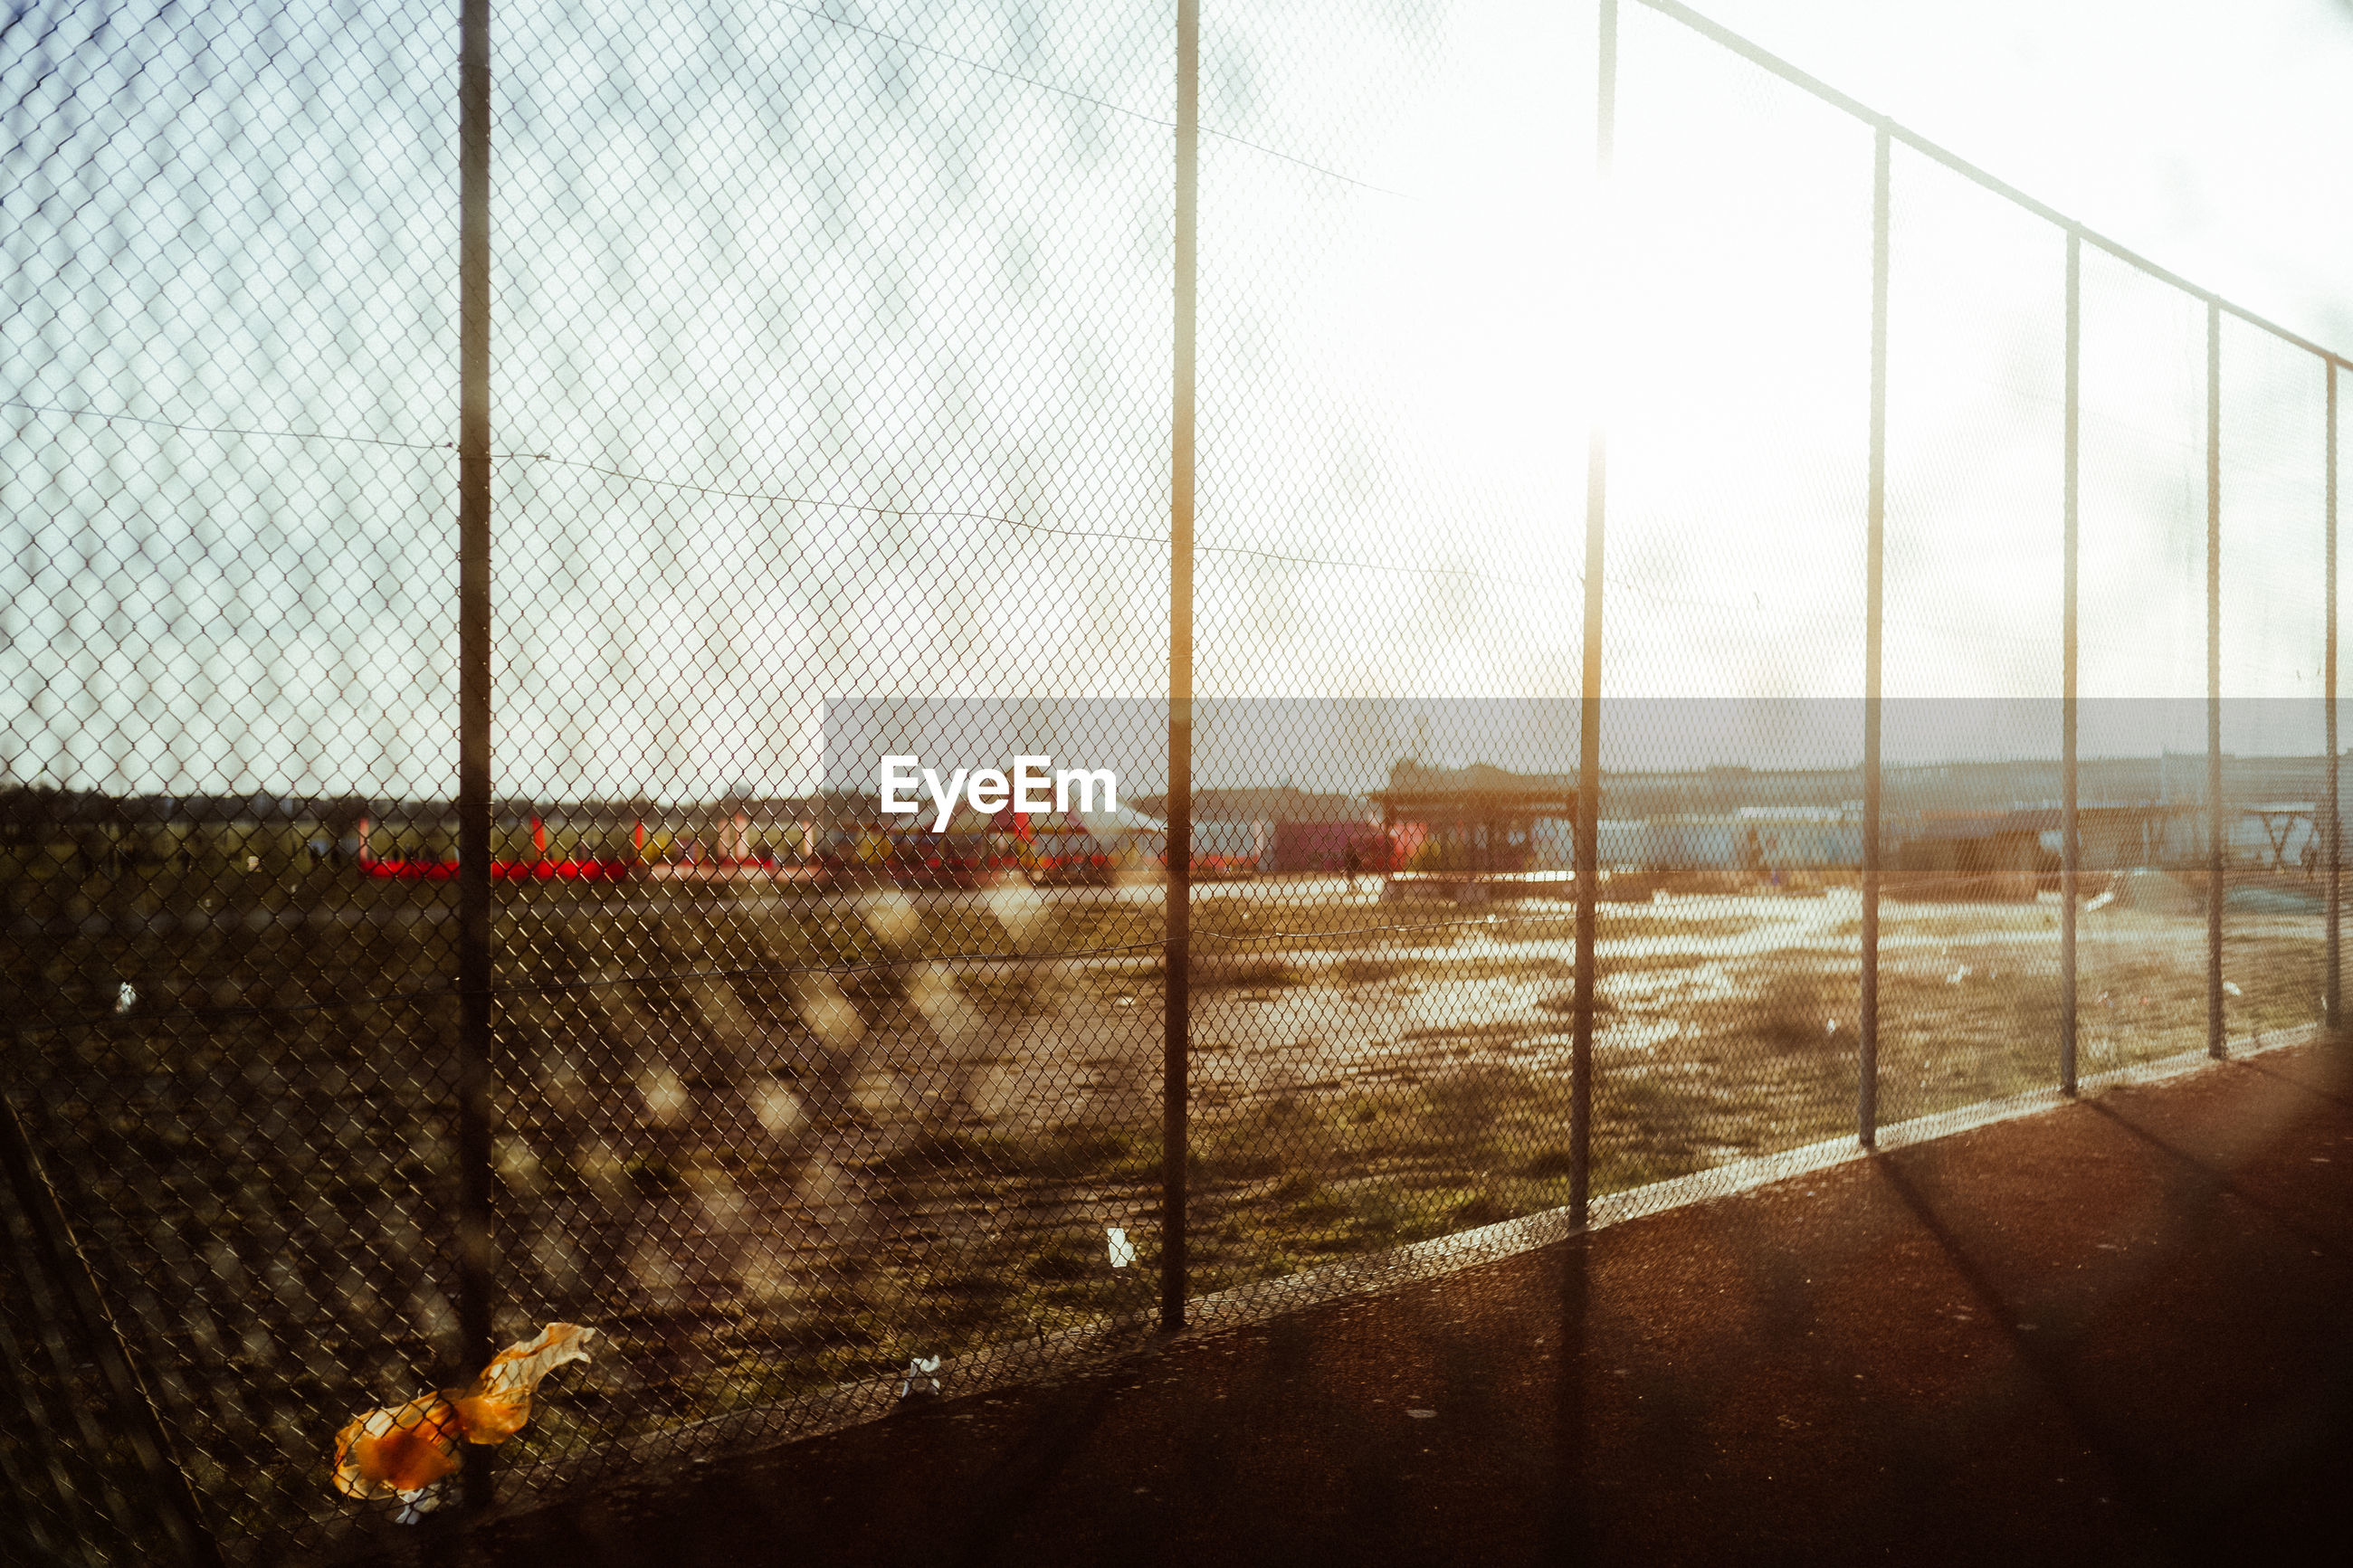 FENCE ON FIELD AGAINST SKY SEEN THROUGH CHAINLINK WINDOW